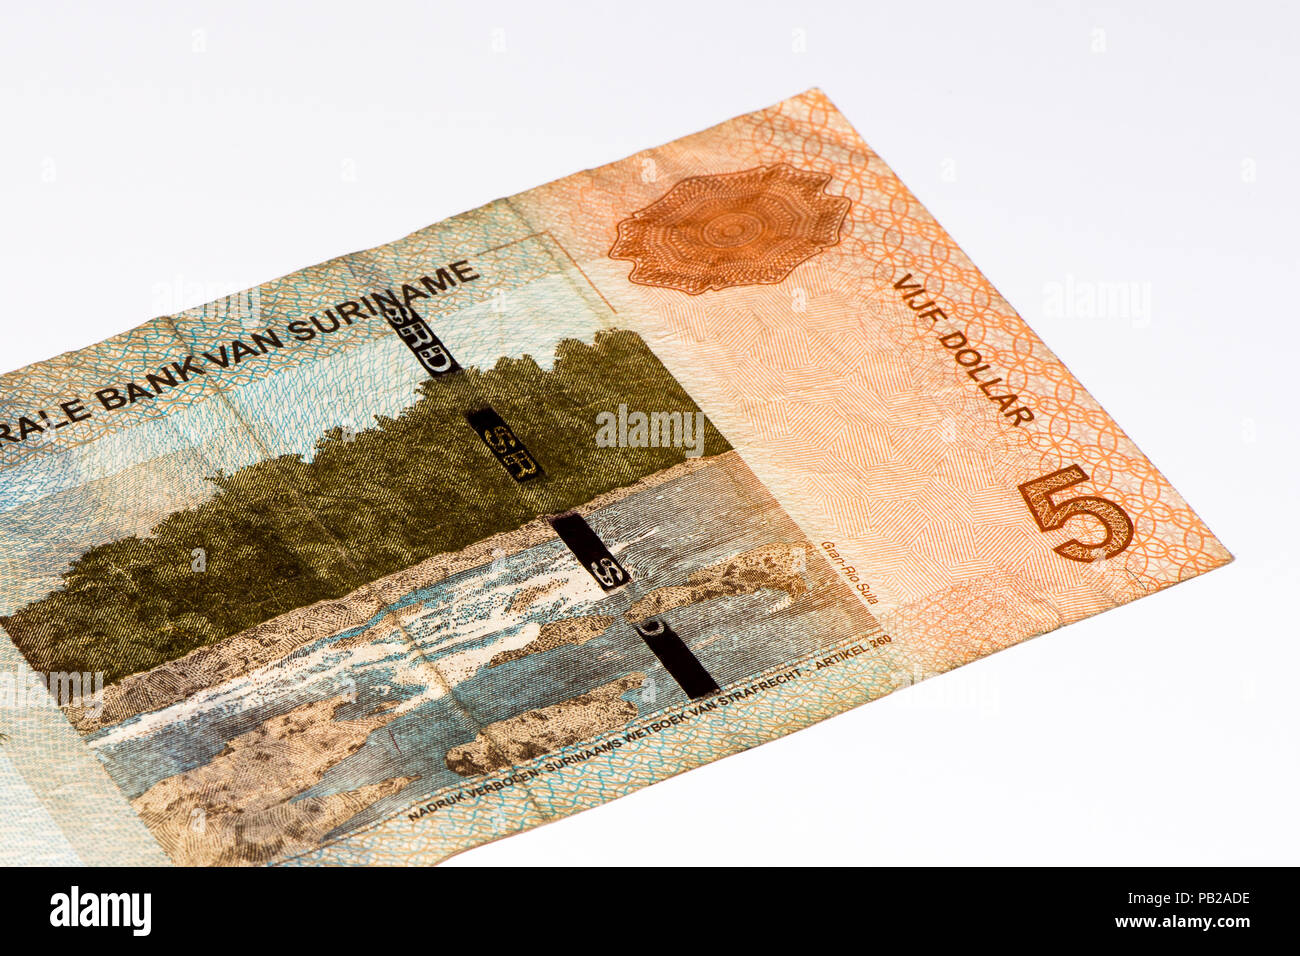 5 Surinamese dollar bank note. Surinamese dollar is the national currency of Suriname - Stock Image